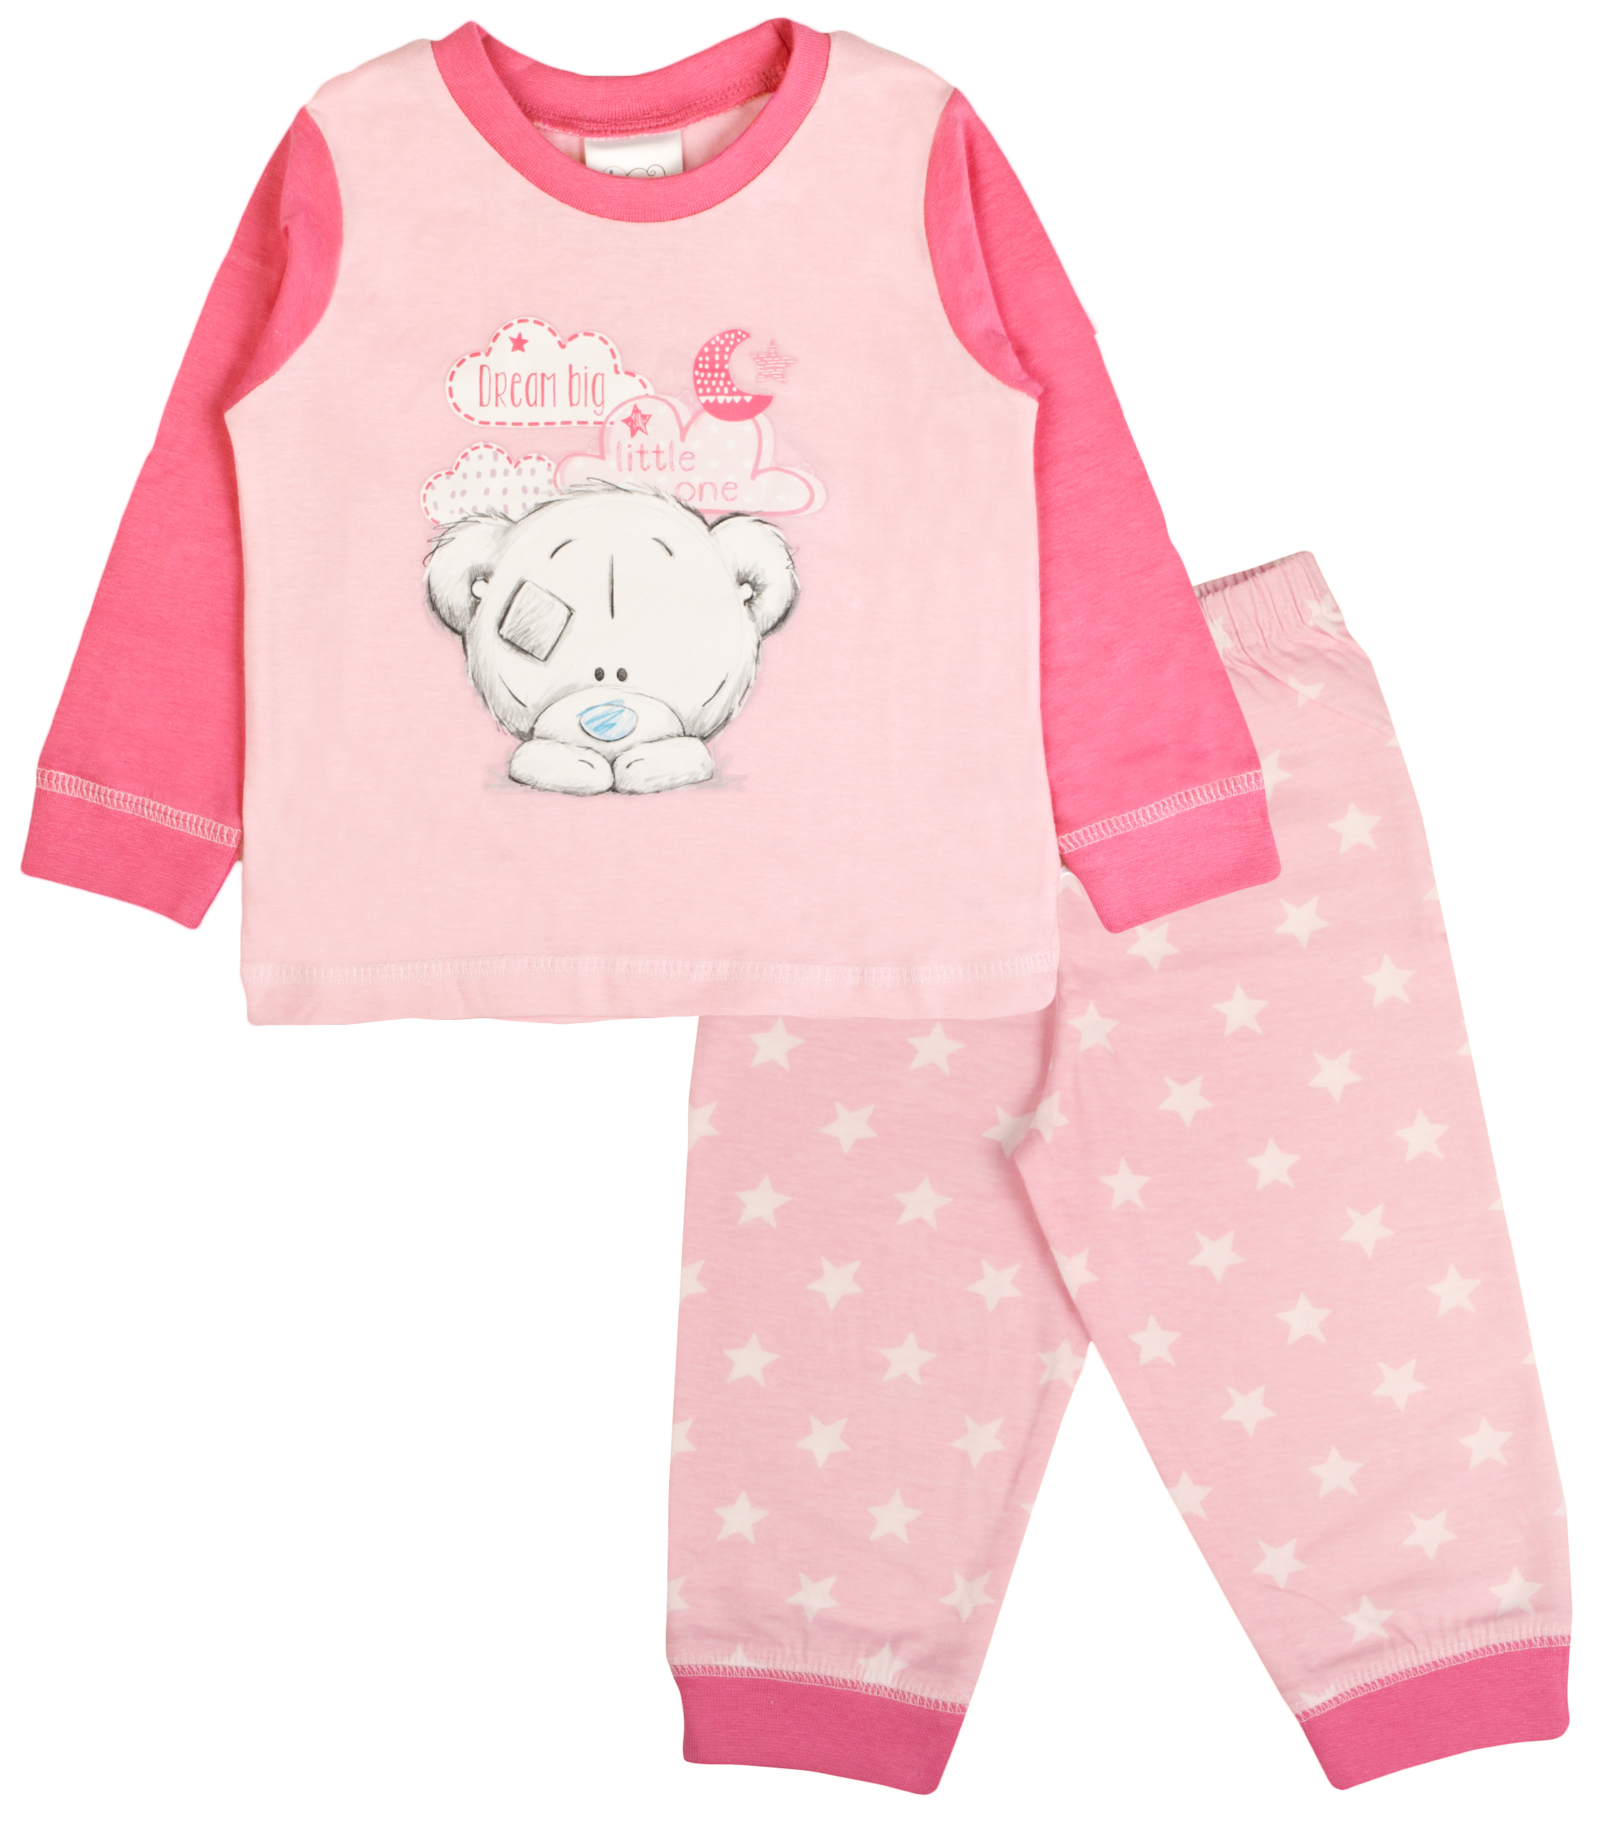 Shop Gap for cute and comfortable toddler clothes everyone buzz24.gae catalog: Reserve In Store, Easy Care, New Additional Sizes, Free Returns, Petite.